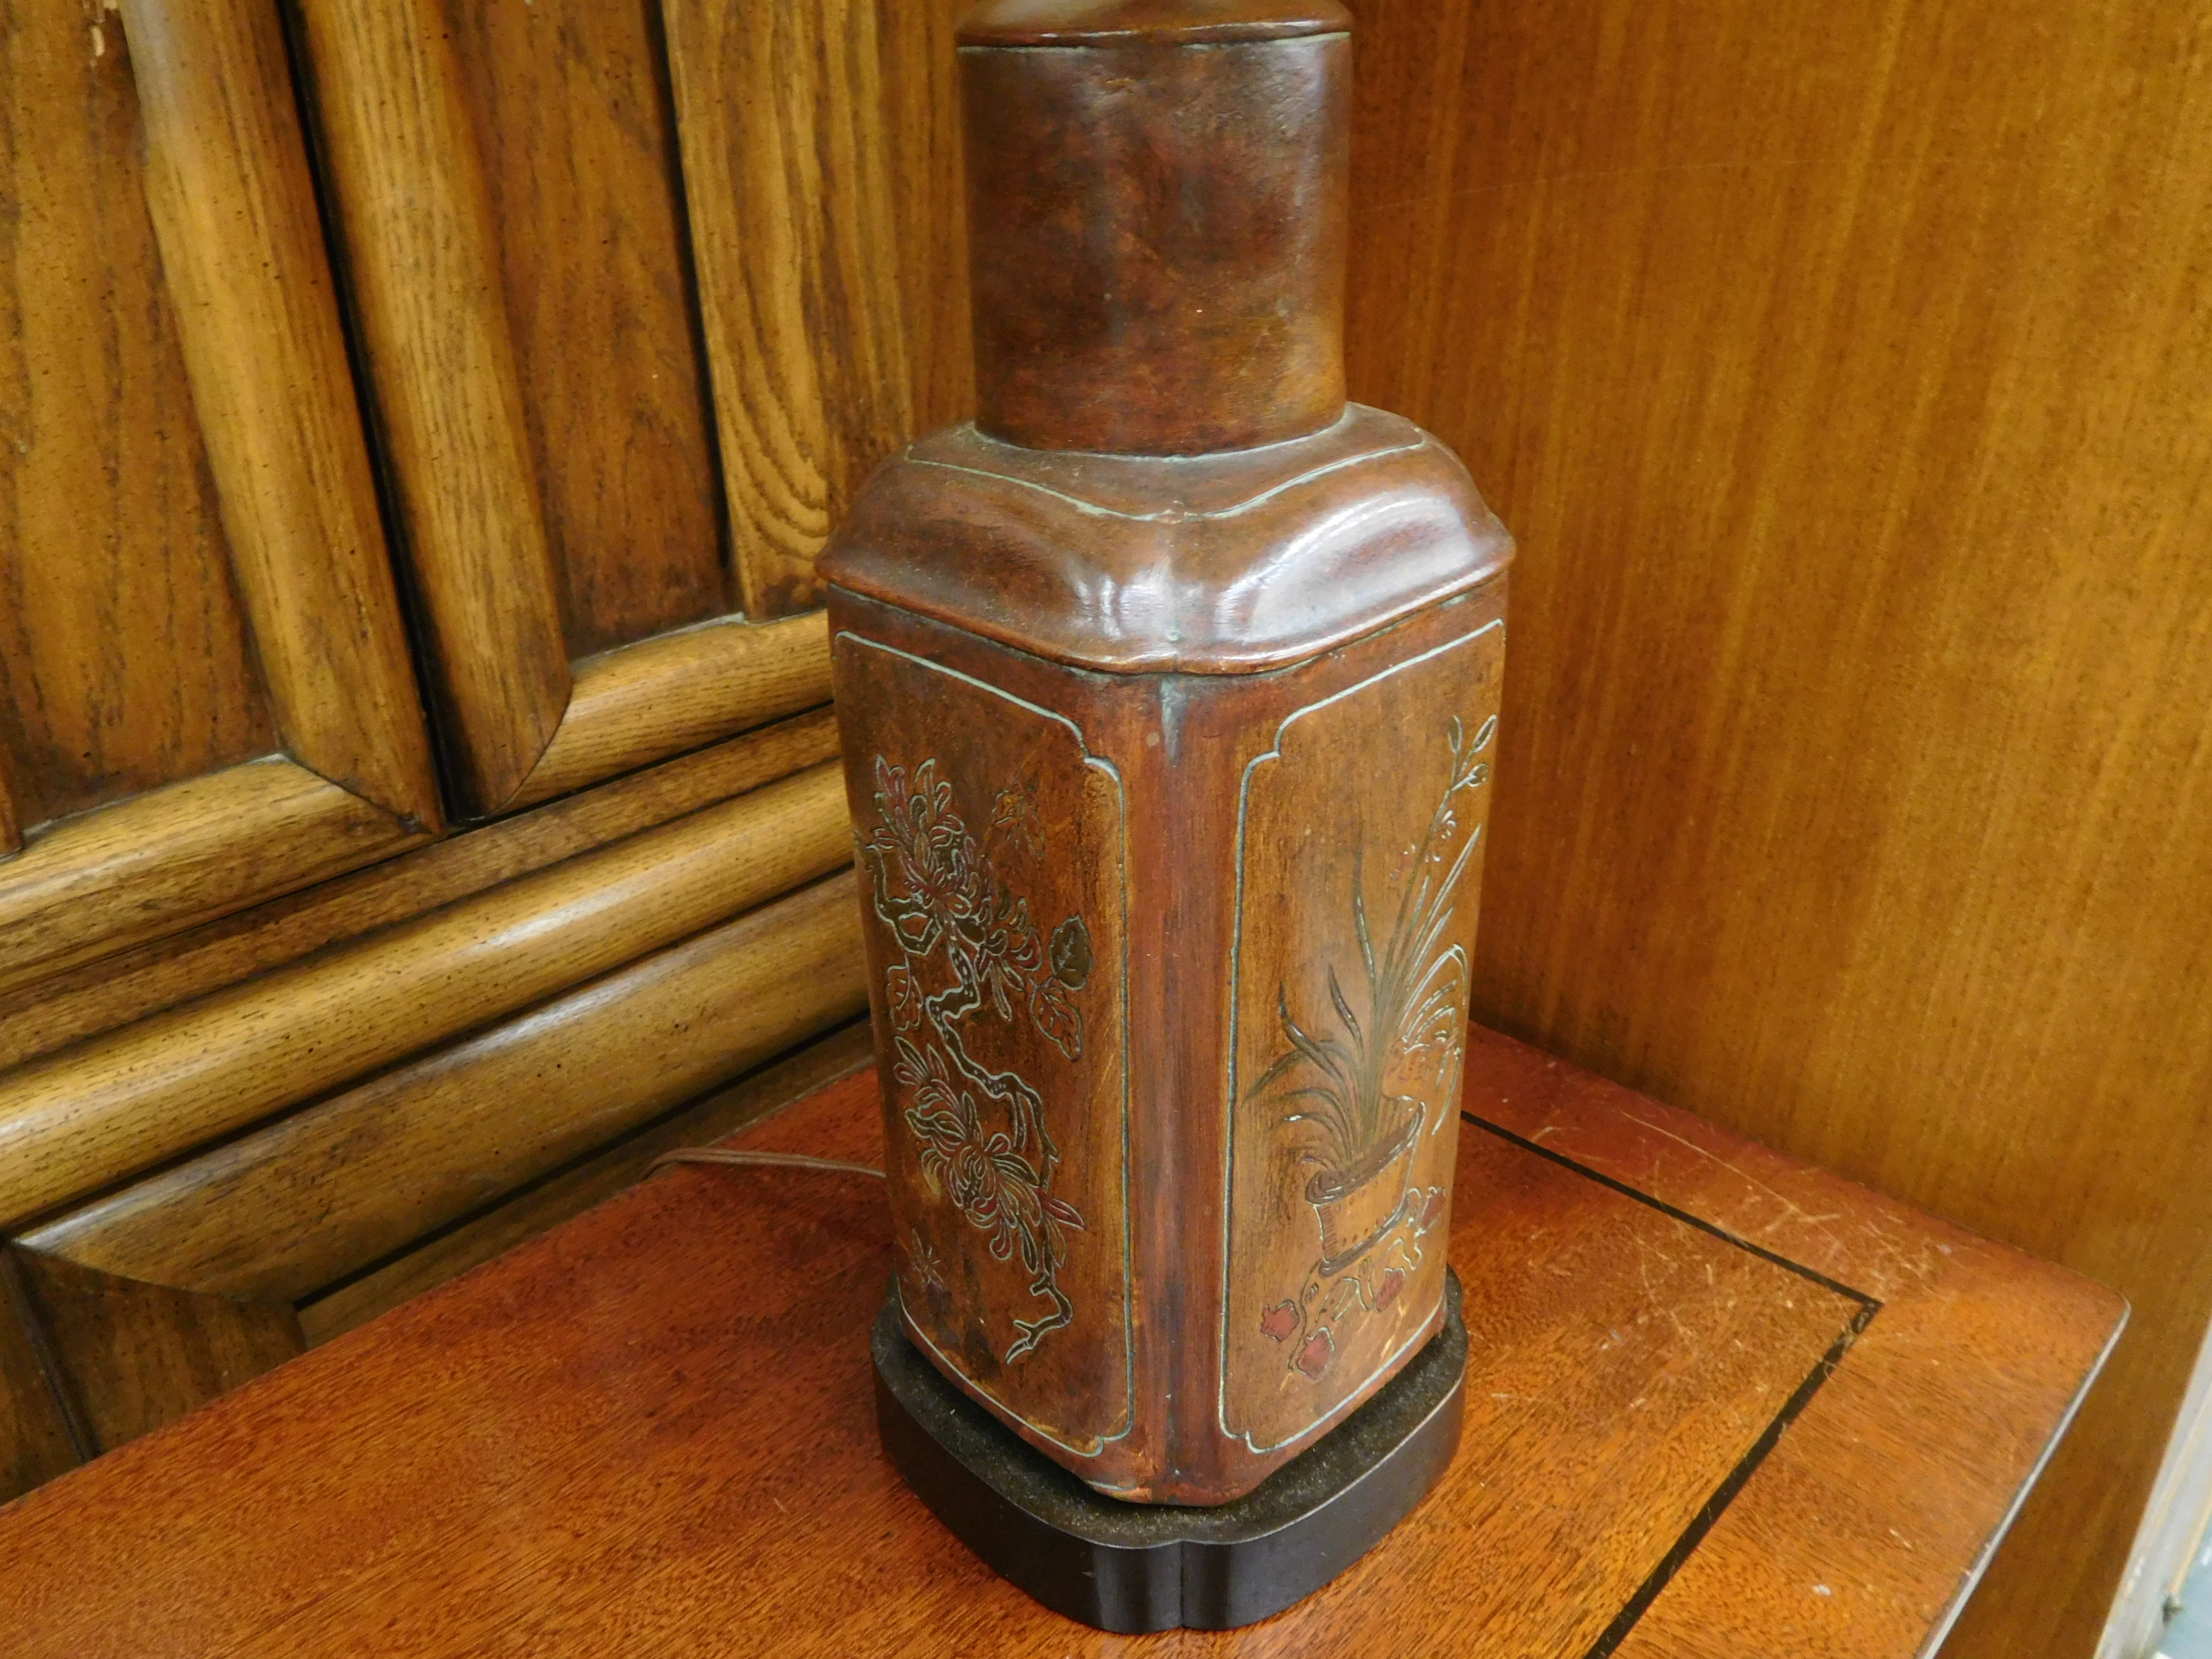 Vintage Asian Lamp with Carved and Painted Wood Base - by Frederick Cooper